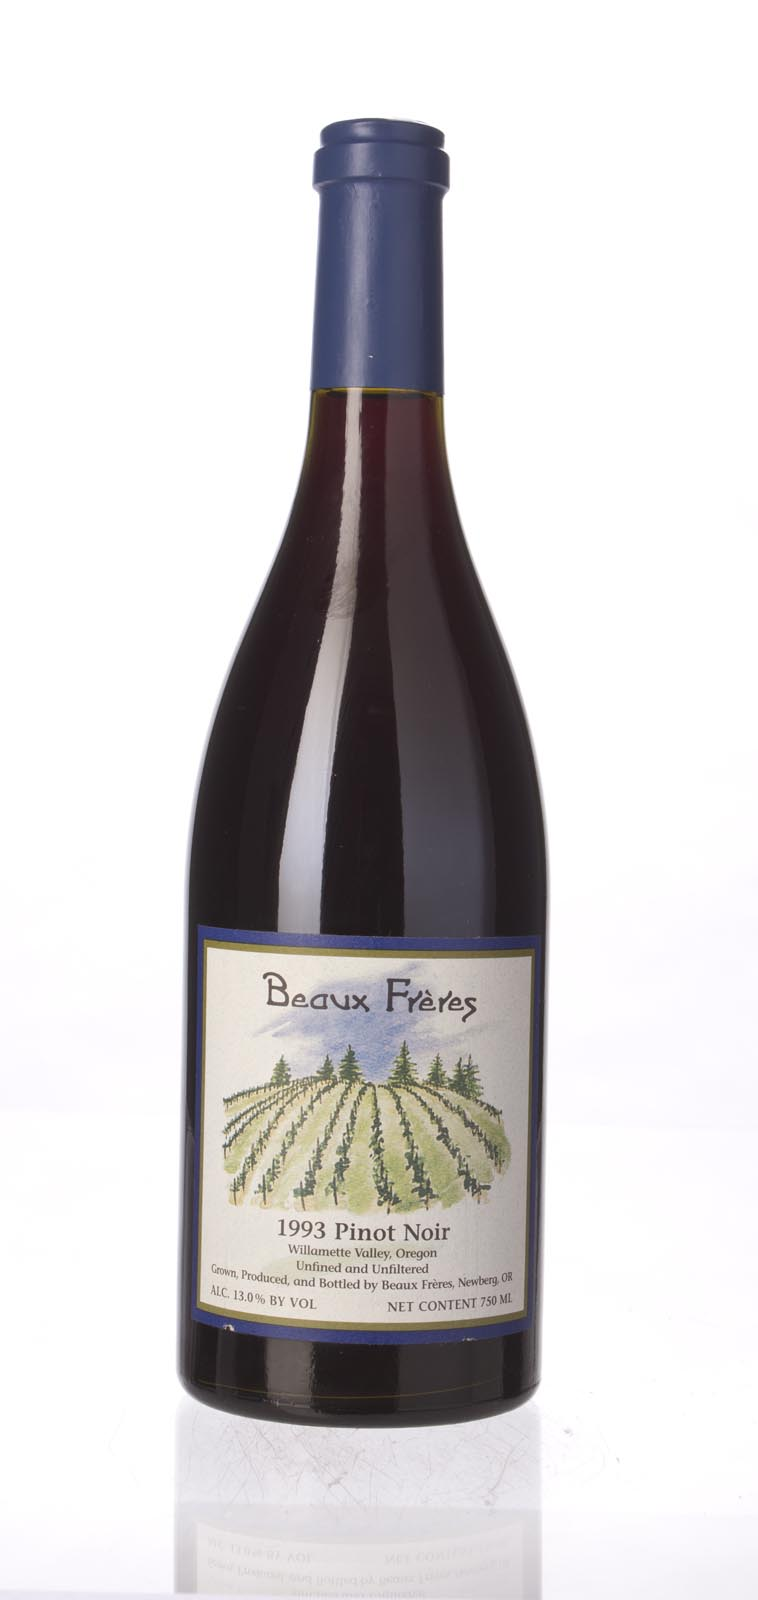 Beaux Freres Pinot Noir Beaux Freres Vineyard 1993, 750mL () from The BPW - Merchants of rare and fine wines.